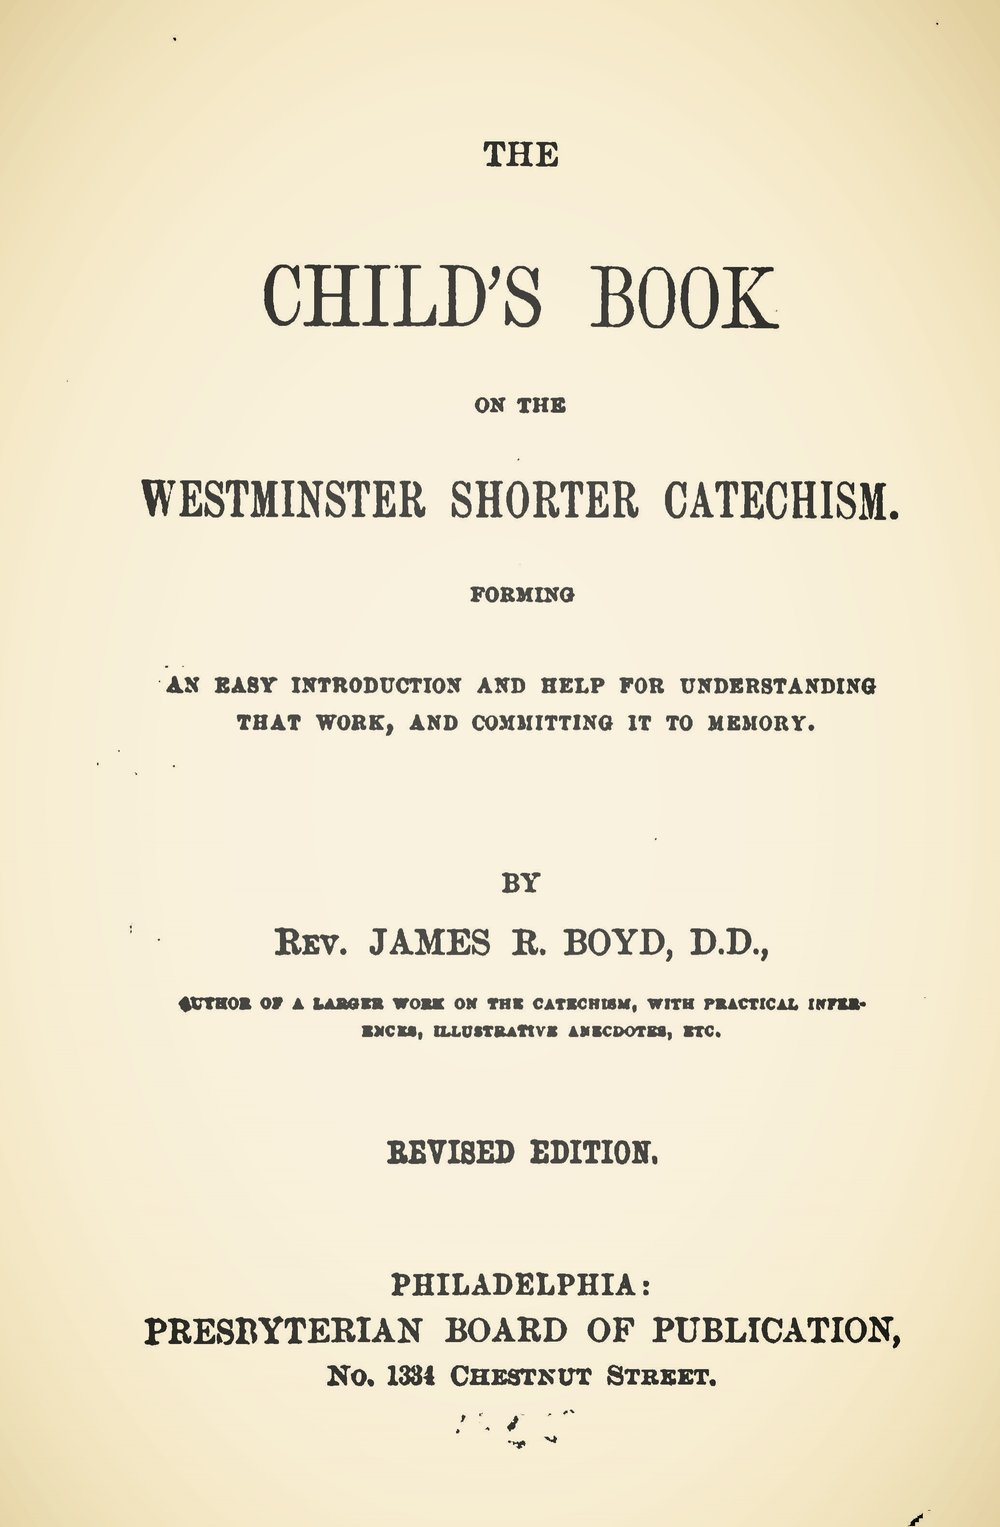 Boyd, James Robert, The Child's Book on the Westminster Shorter Catechism Title Page.jpg